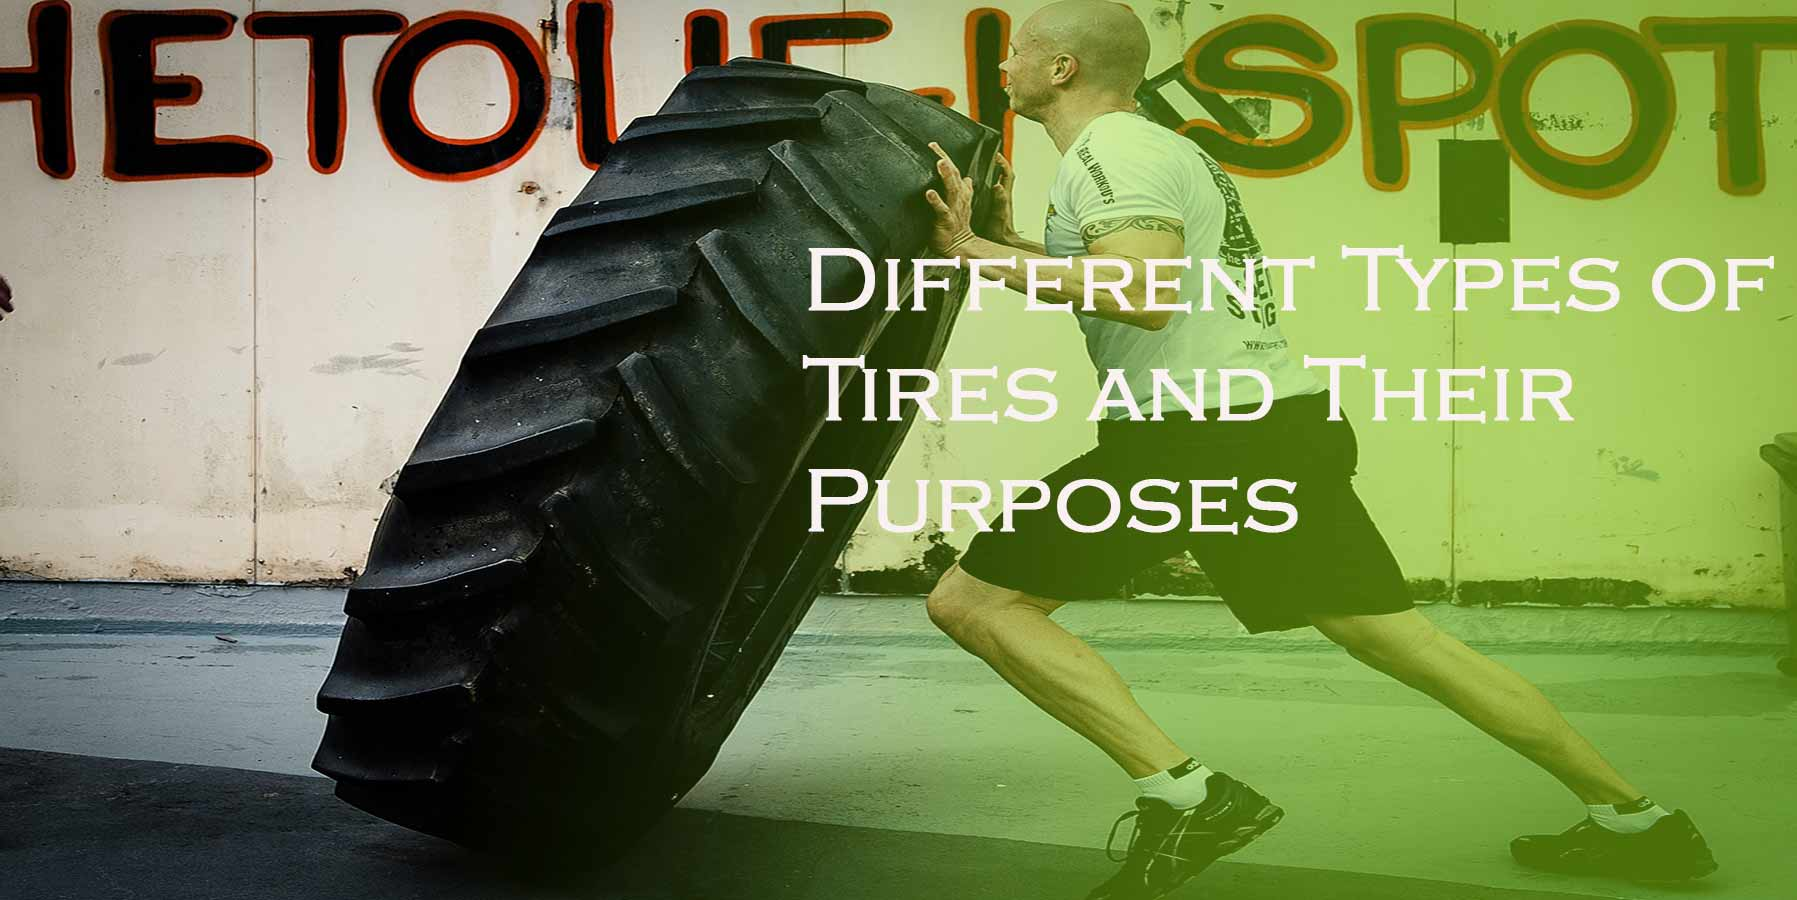 Different Types of Tires And Their Purpose